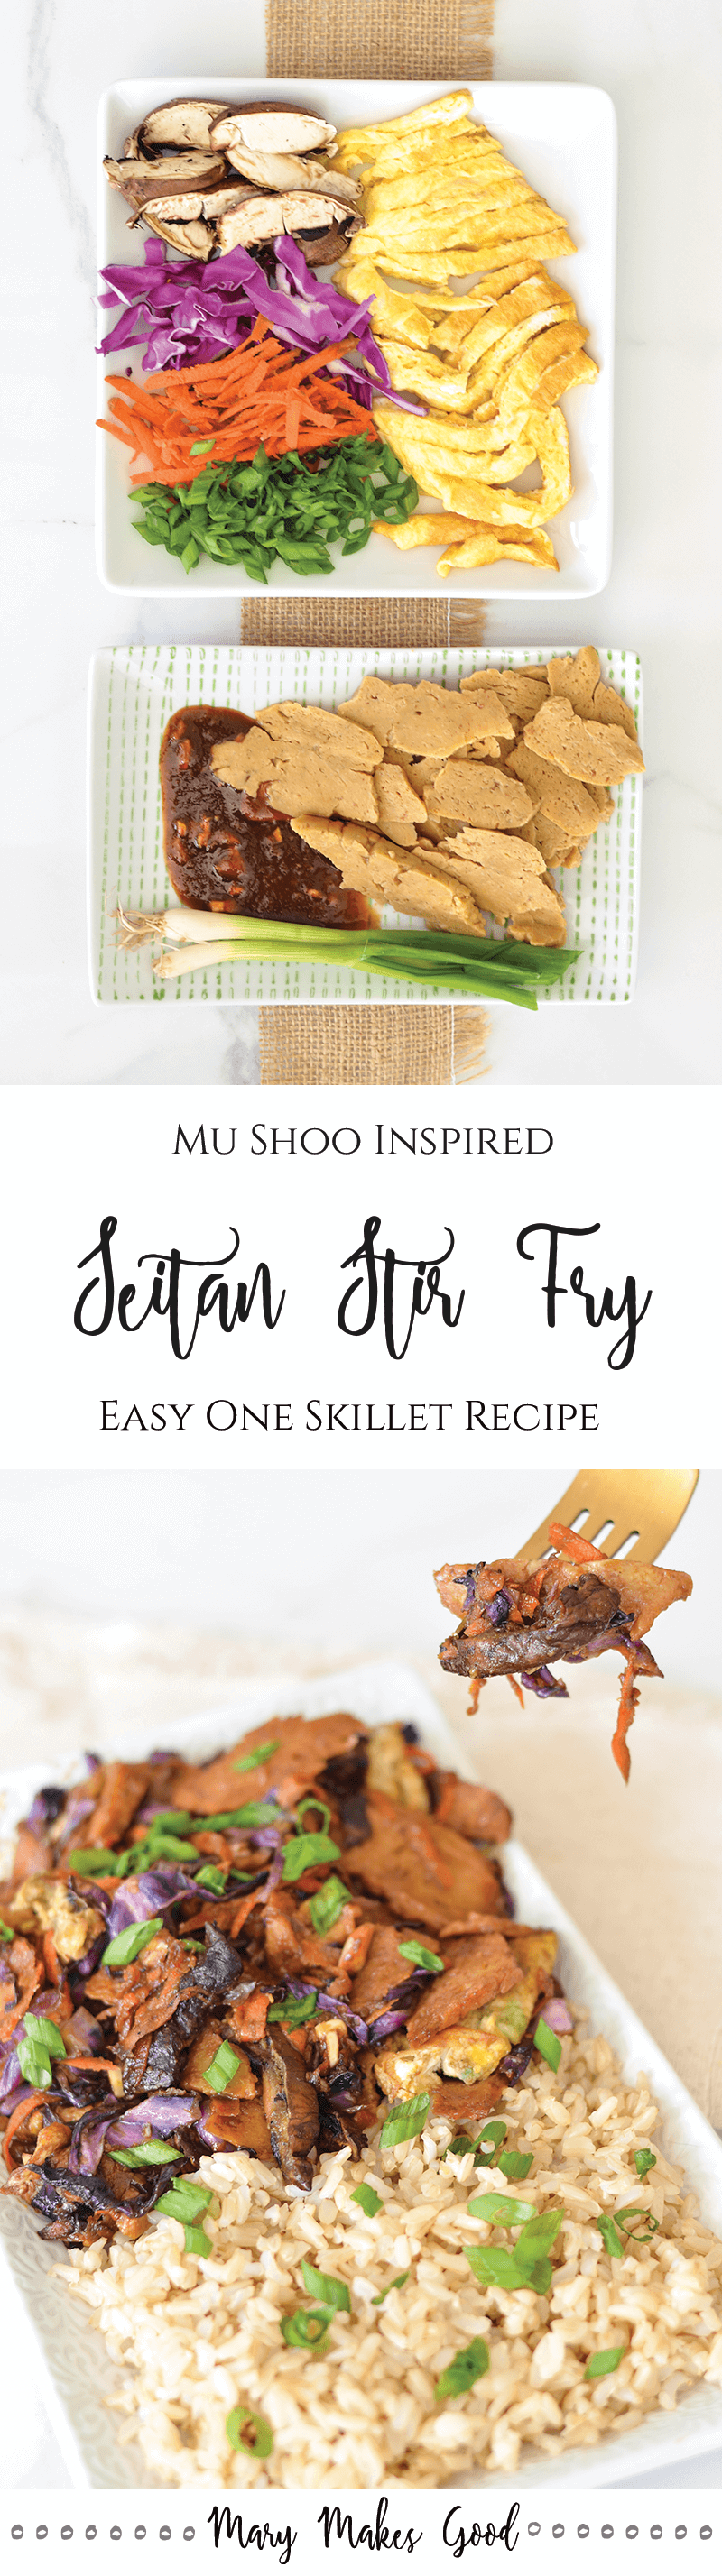 Make Your Own One Skillet Mu Shoo Seitan - A tasty choice for Meatless Mondays!